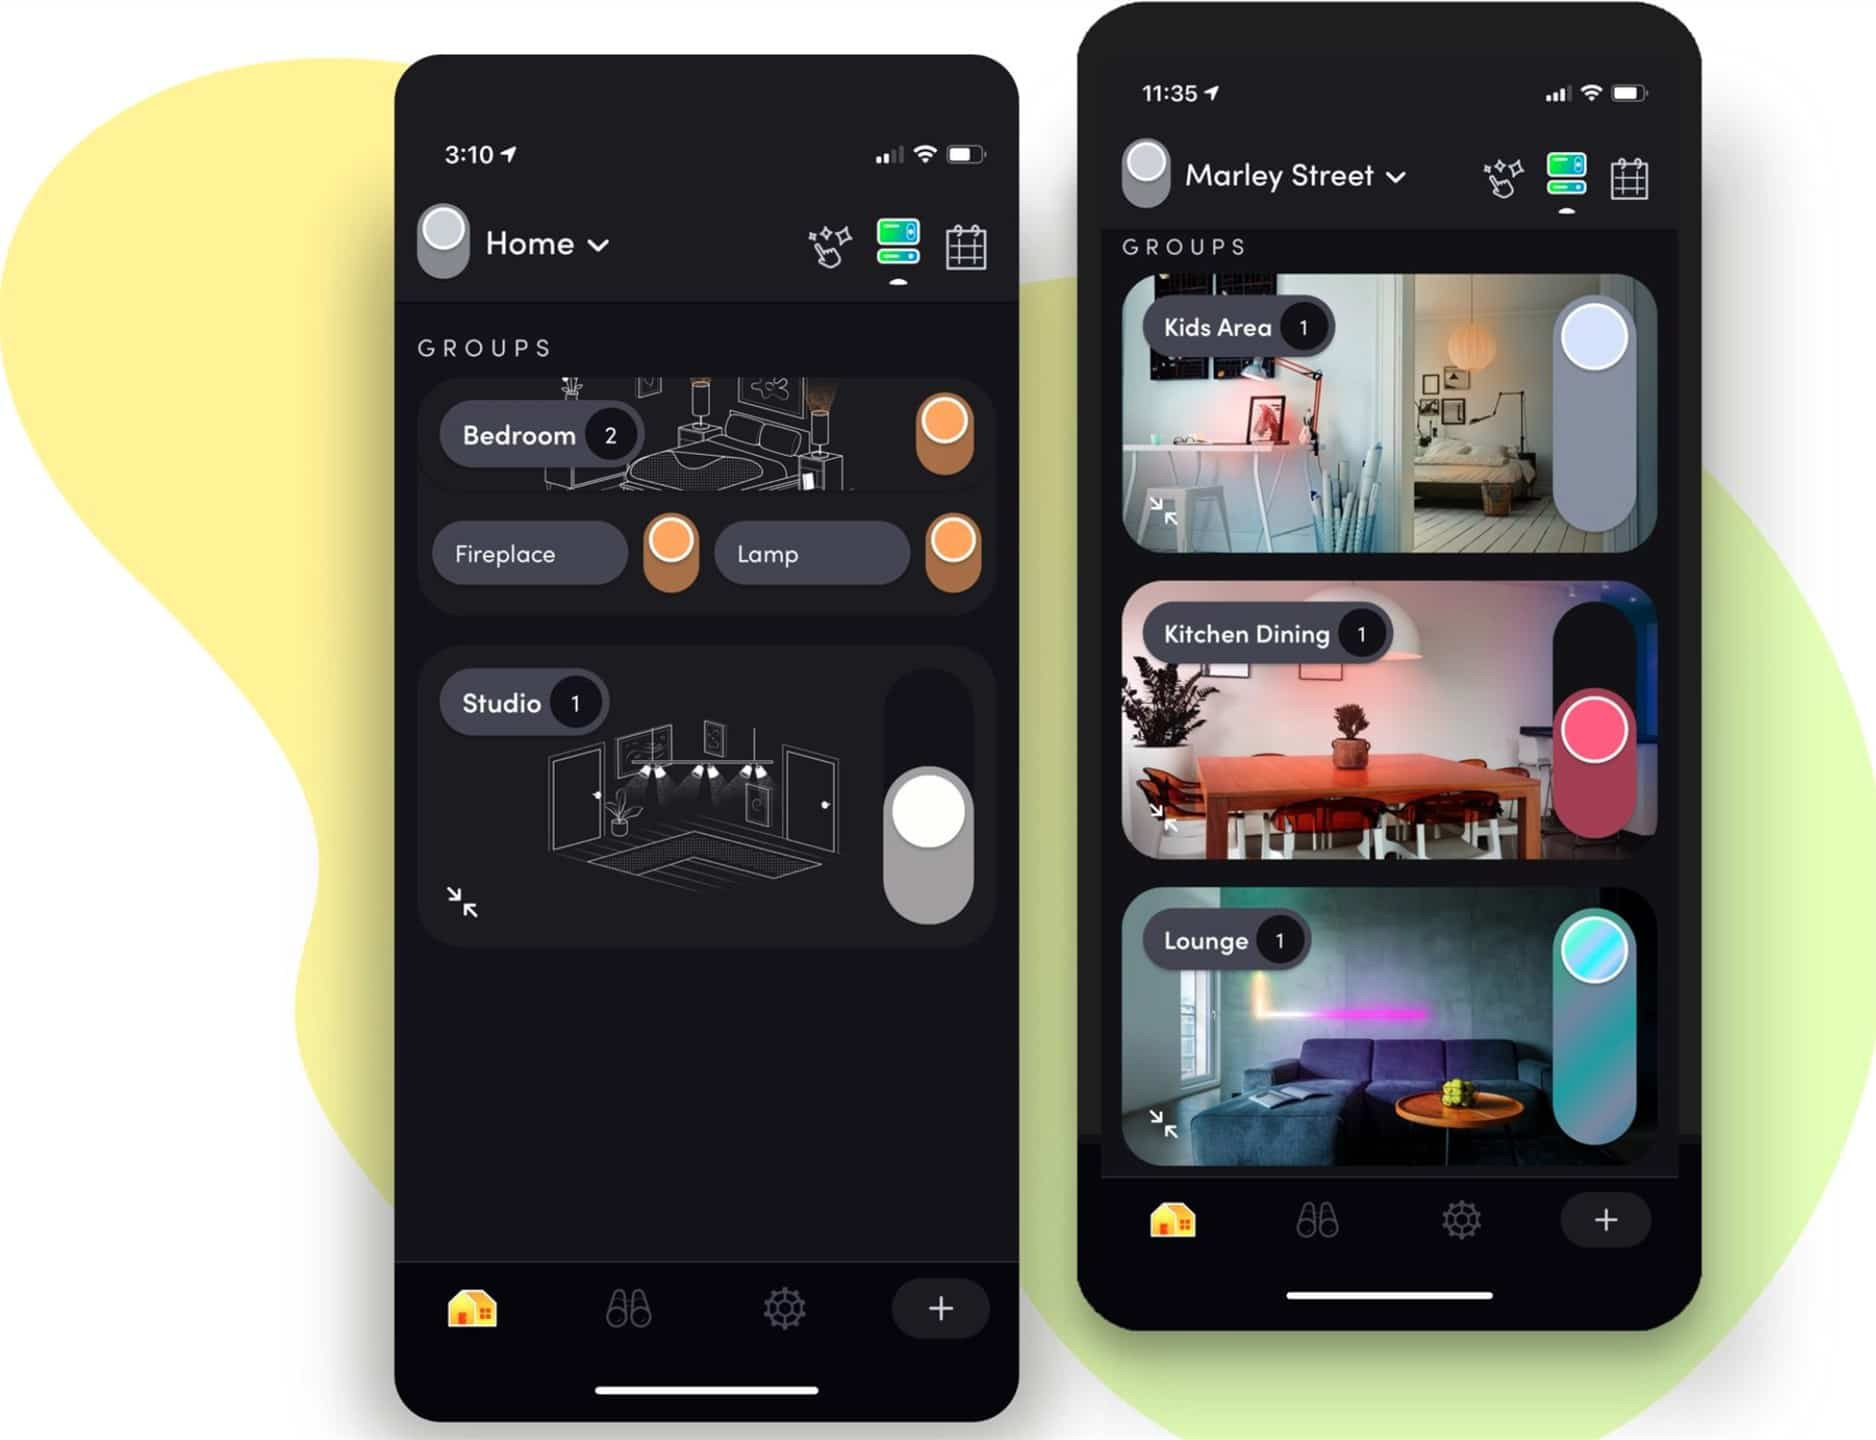 LIFX App 4 update is coming tomorrow and it looks good